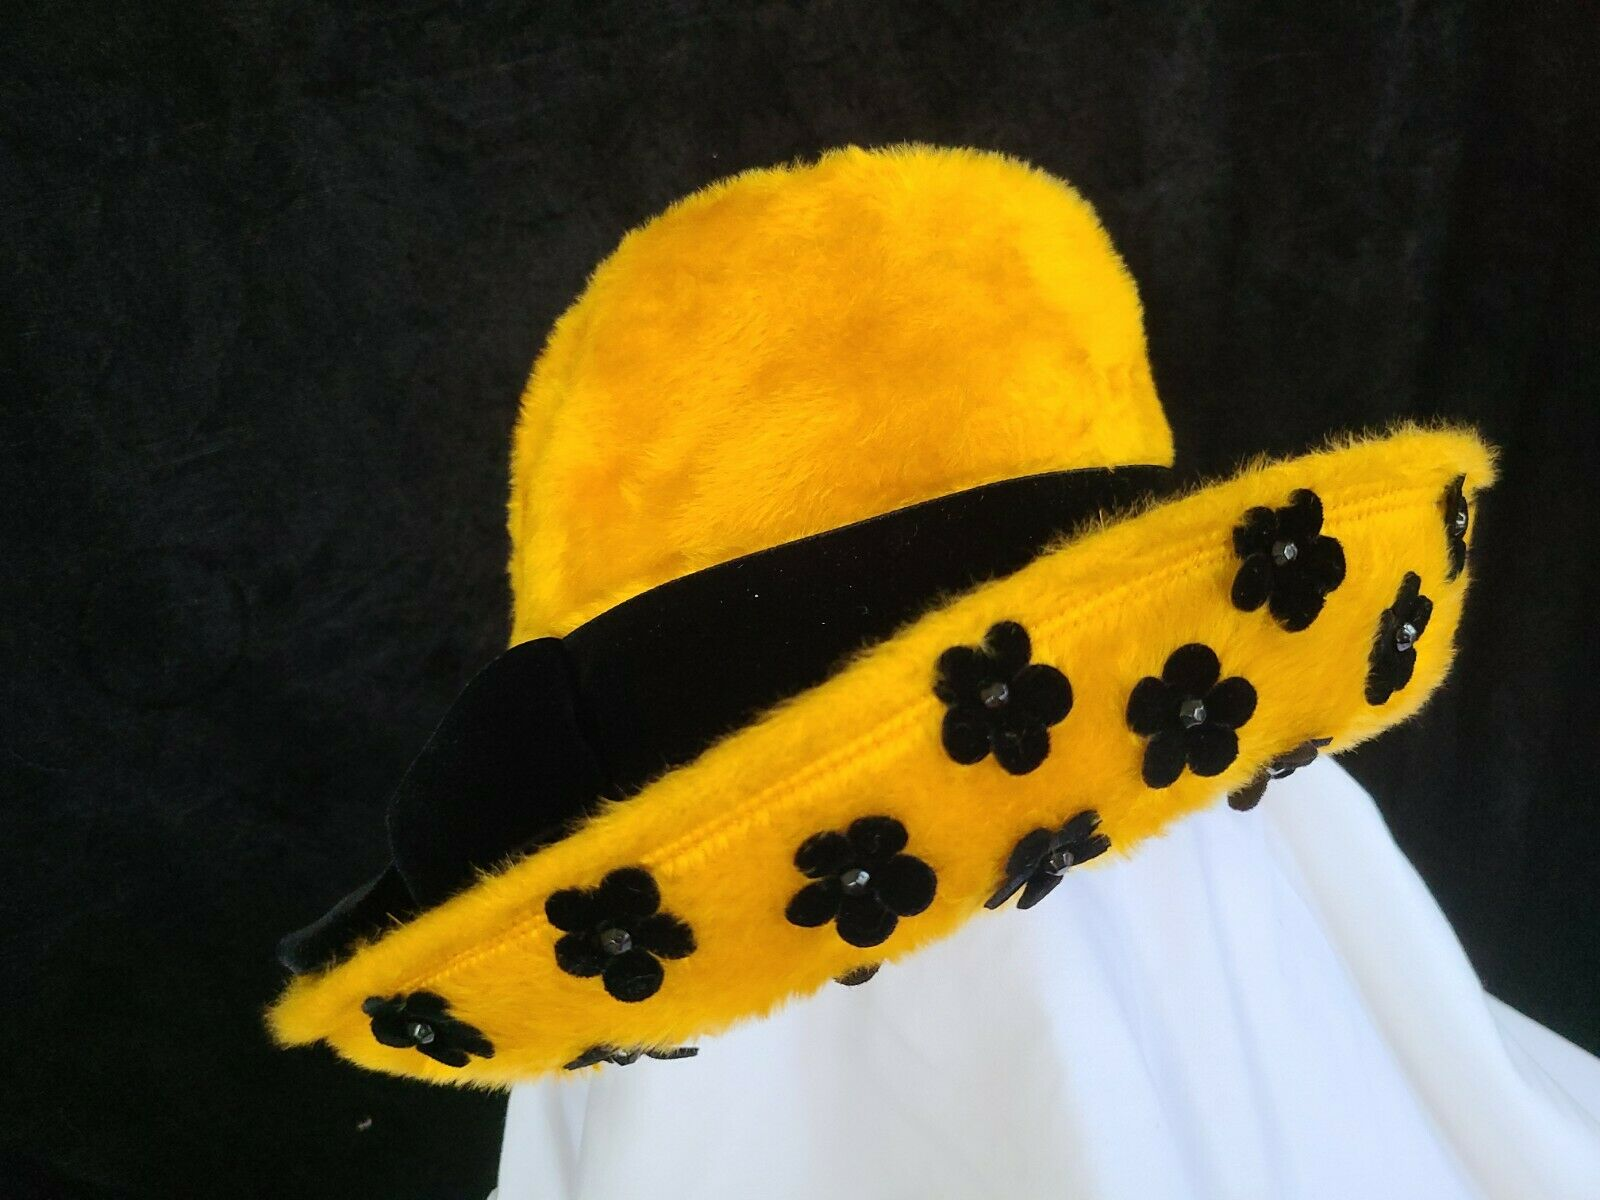 Vintage Felt/fur Gold And Black Woman's Hat made in Italy small/med